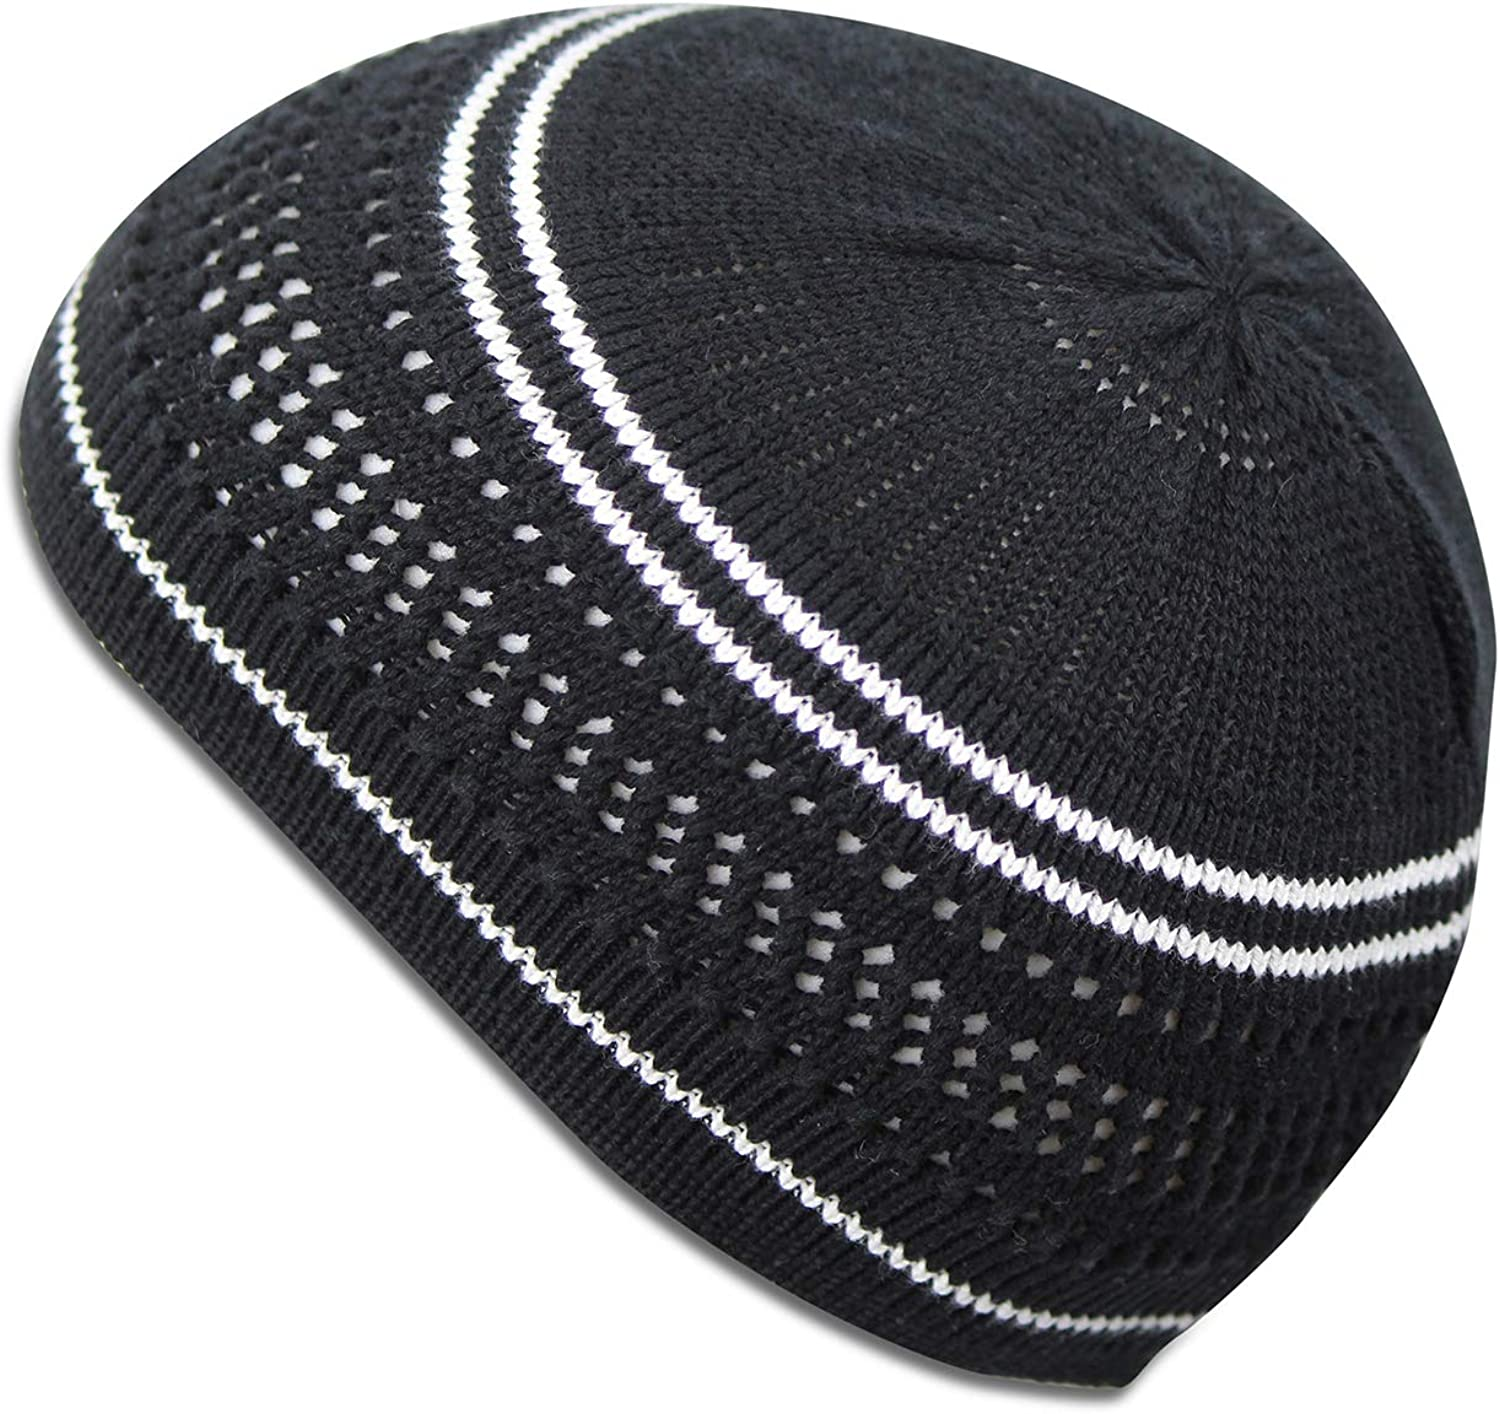 Muslim Bookmark Stretchy Elastic Beanie Kufi Skull Cap Hats Featuring Cool Designs and Stripes